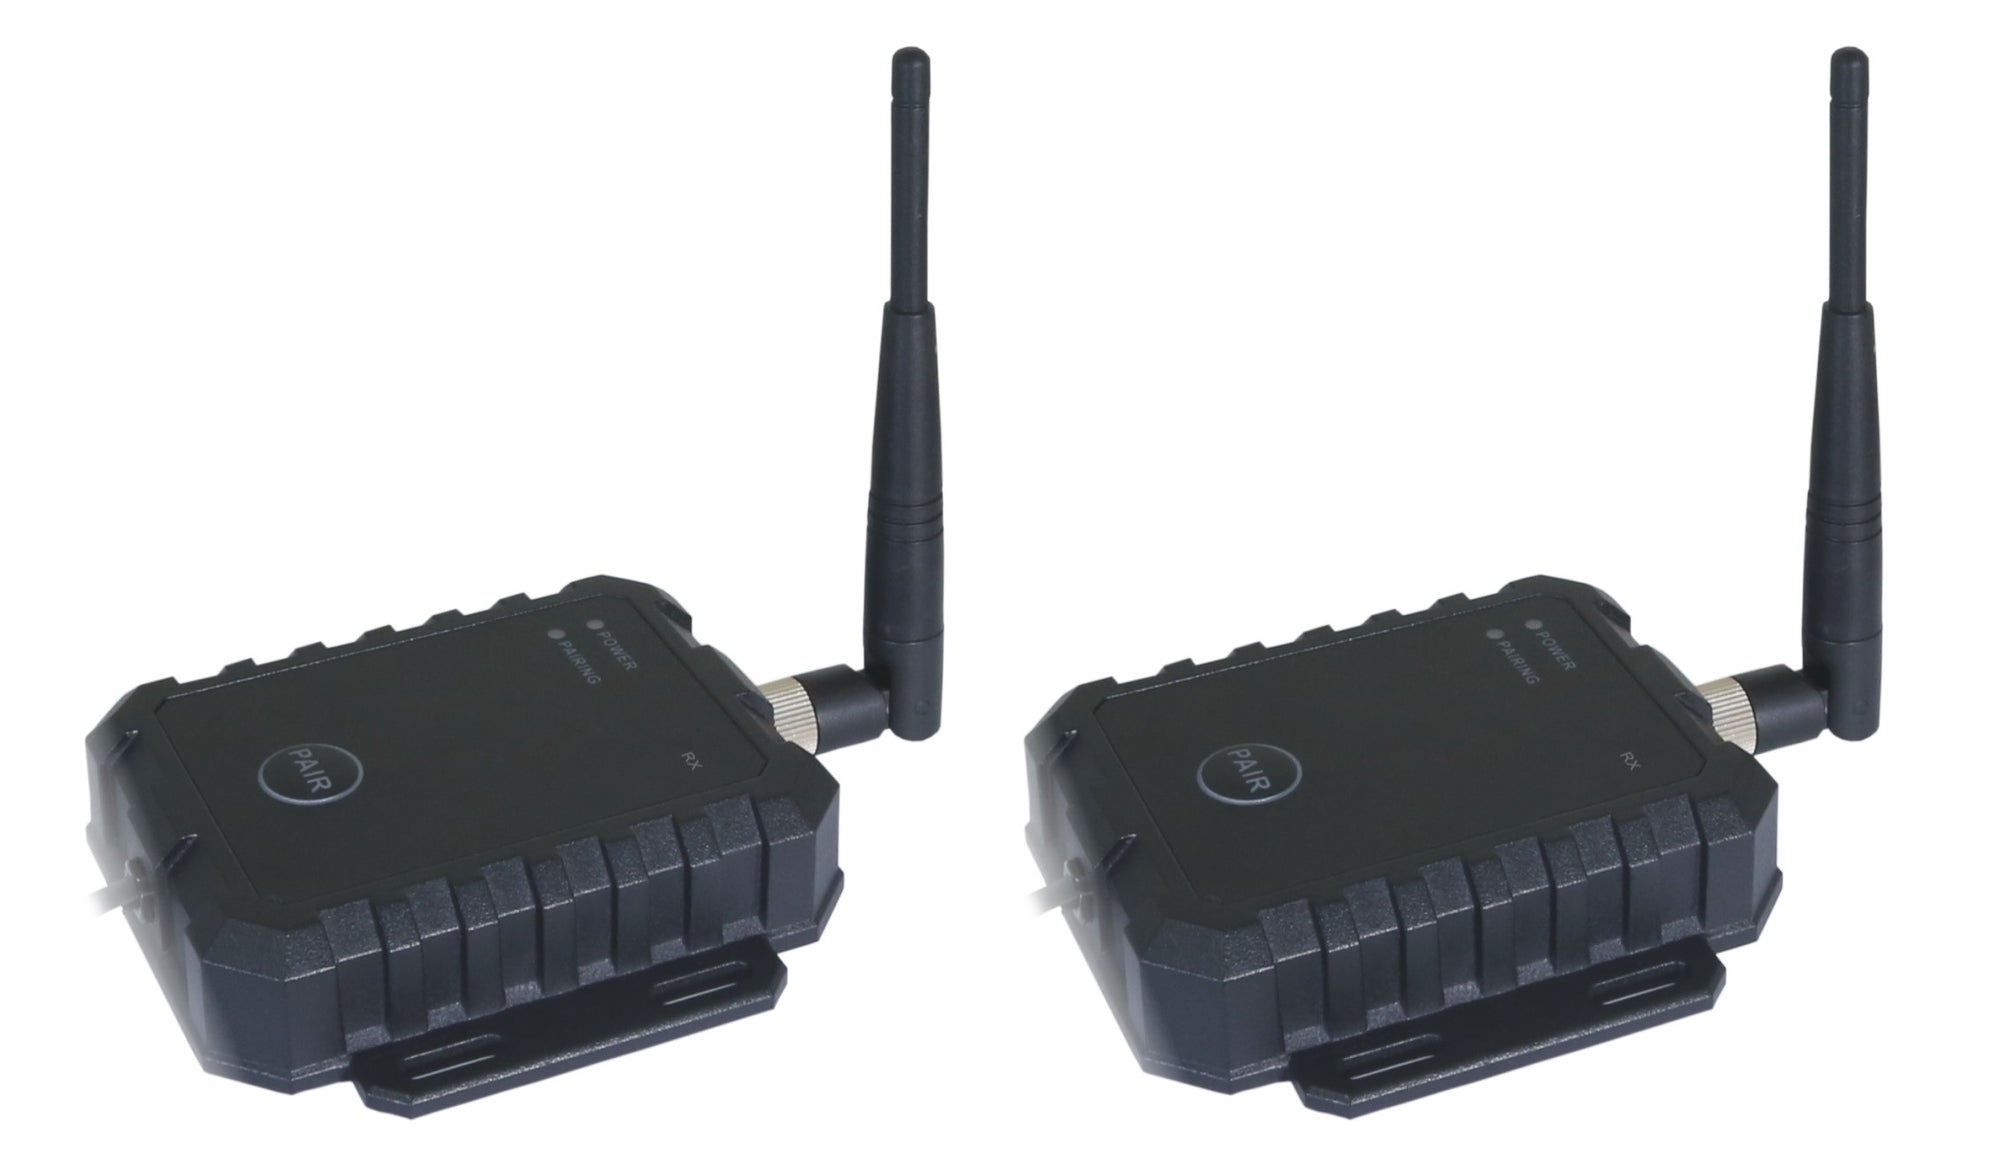 Rydeen WG-2400P Digital Wireless Video Transmitter - Lockdown Security